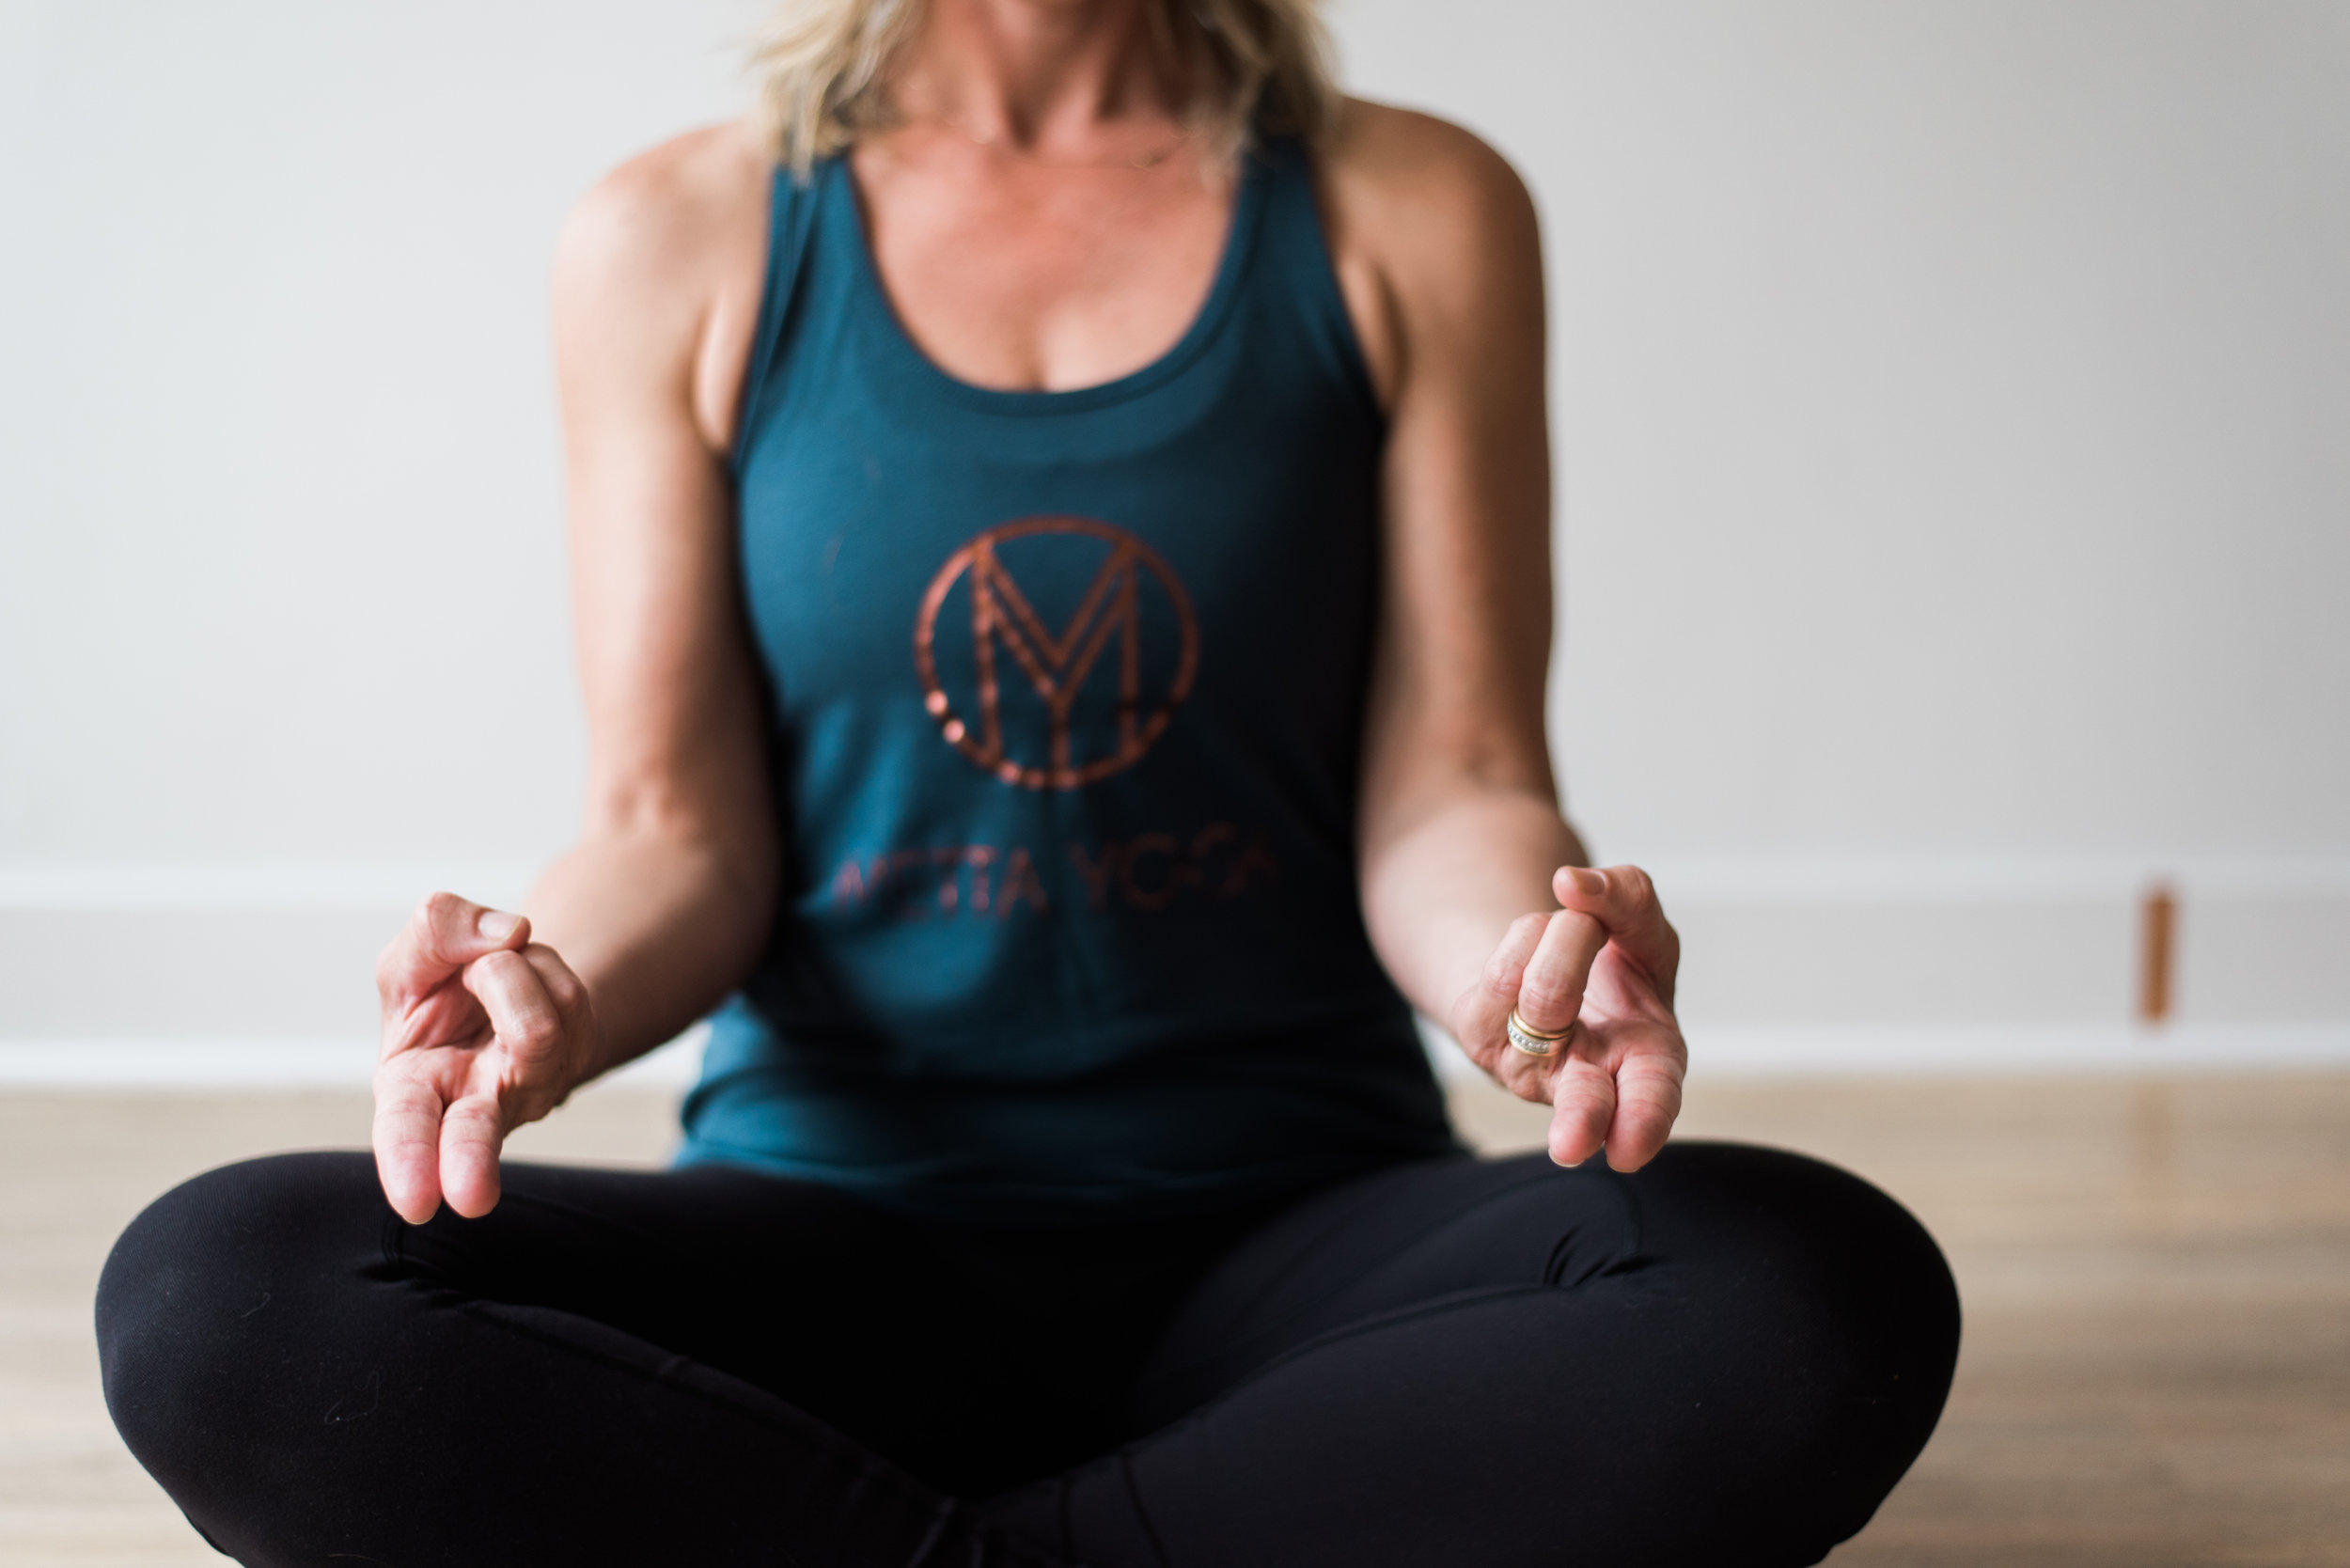 prana mudra, yoga philosophy, yamas and niyamas, yoga blog, brahmacharya